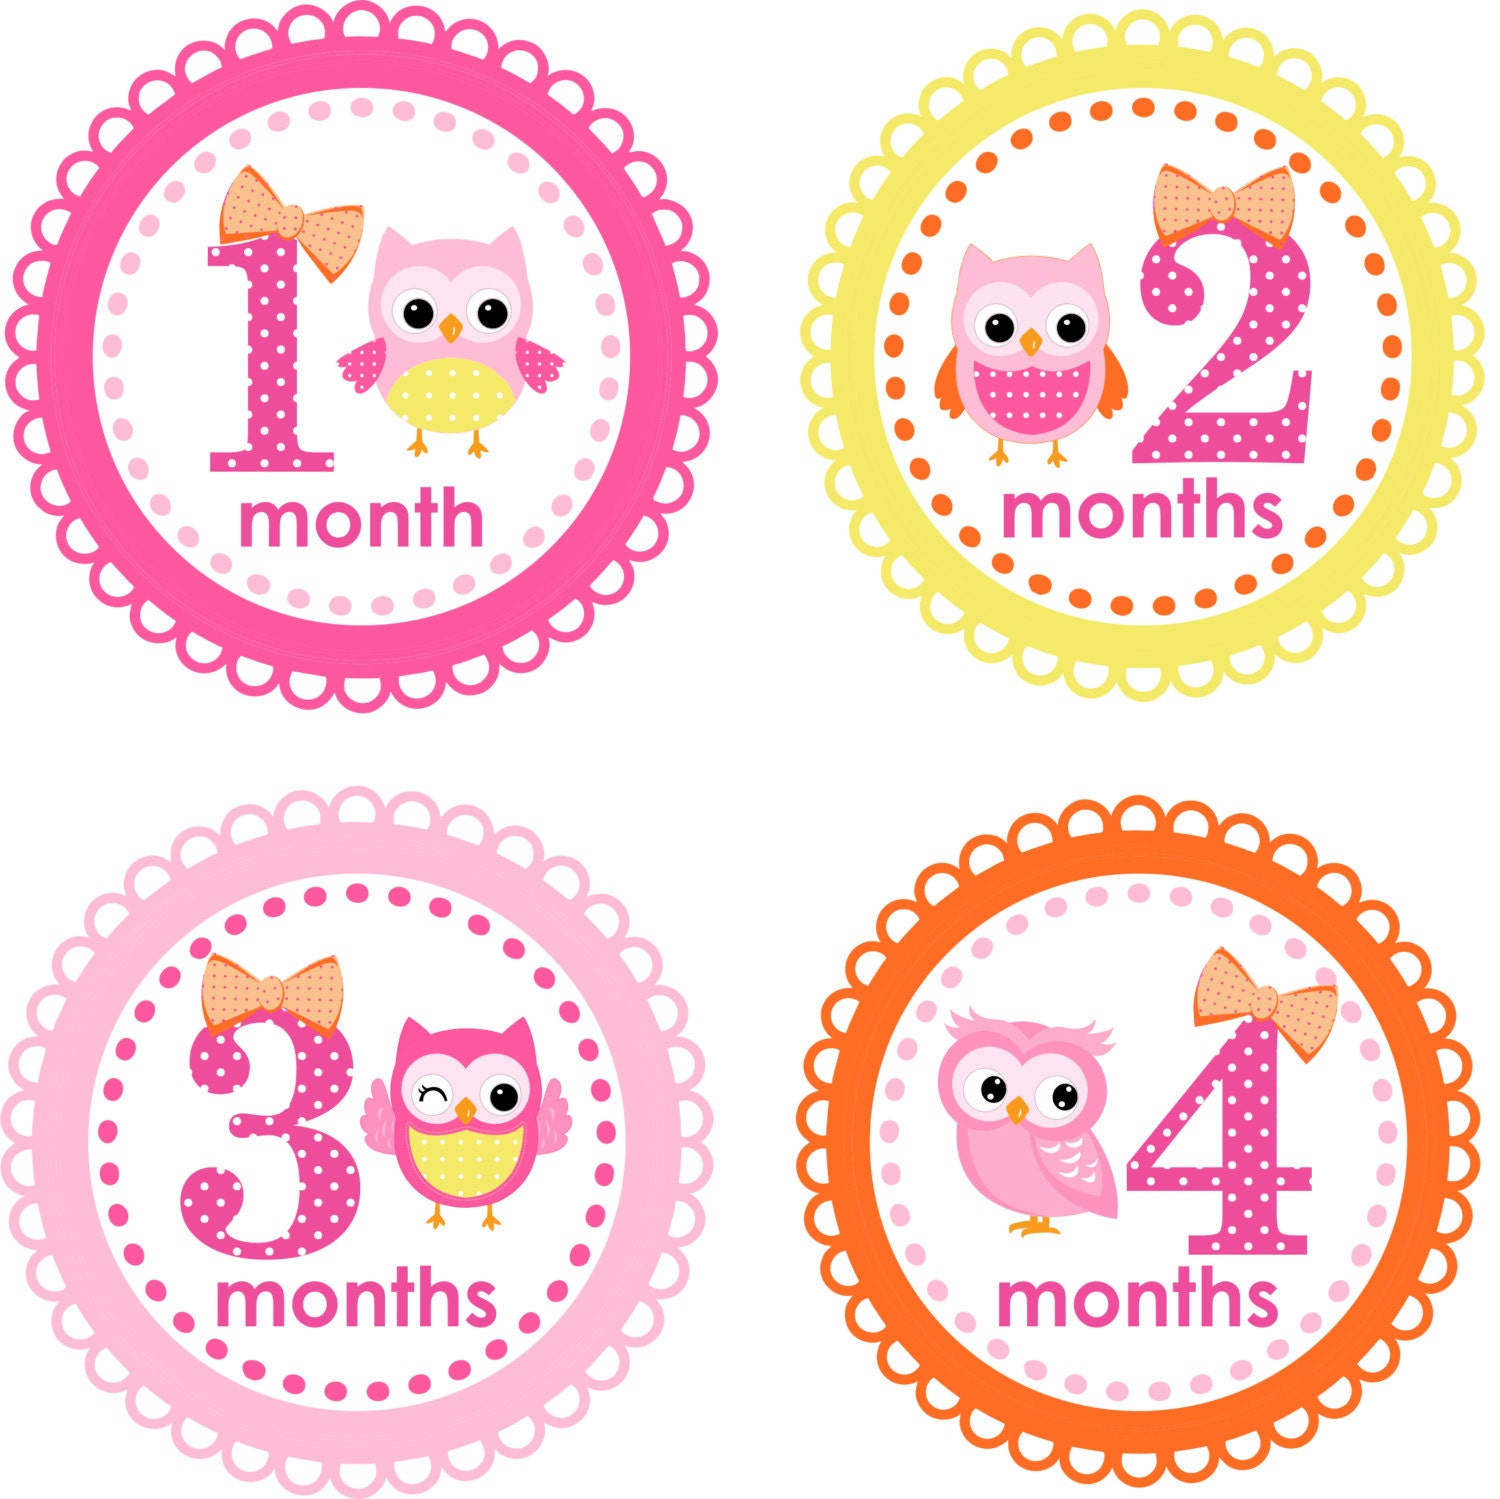 ... Stickers Monthly Baby Stickers Baby Shower Gift Photo Prop Baby